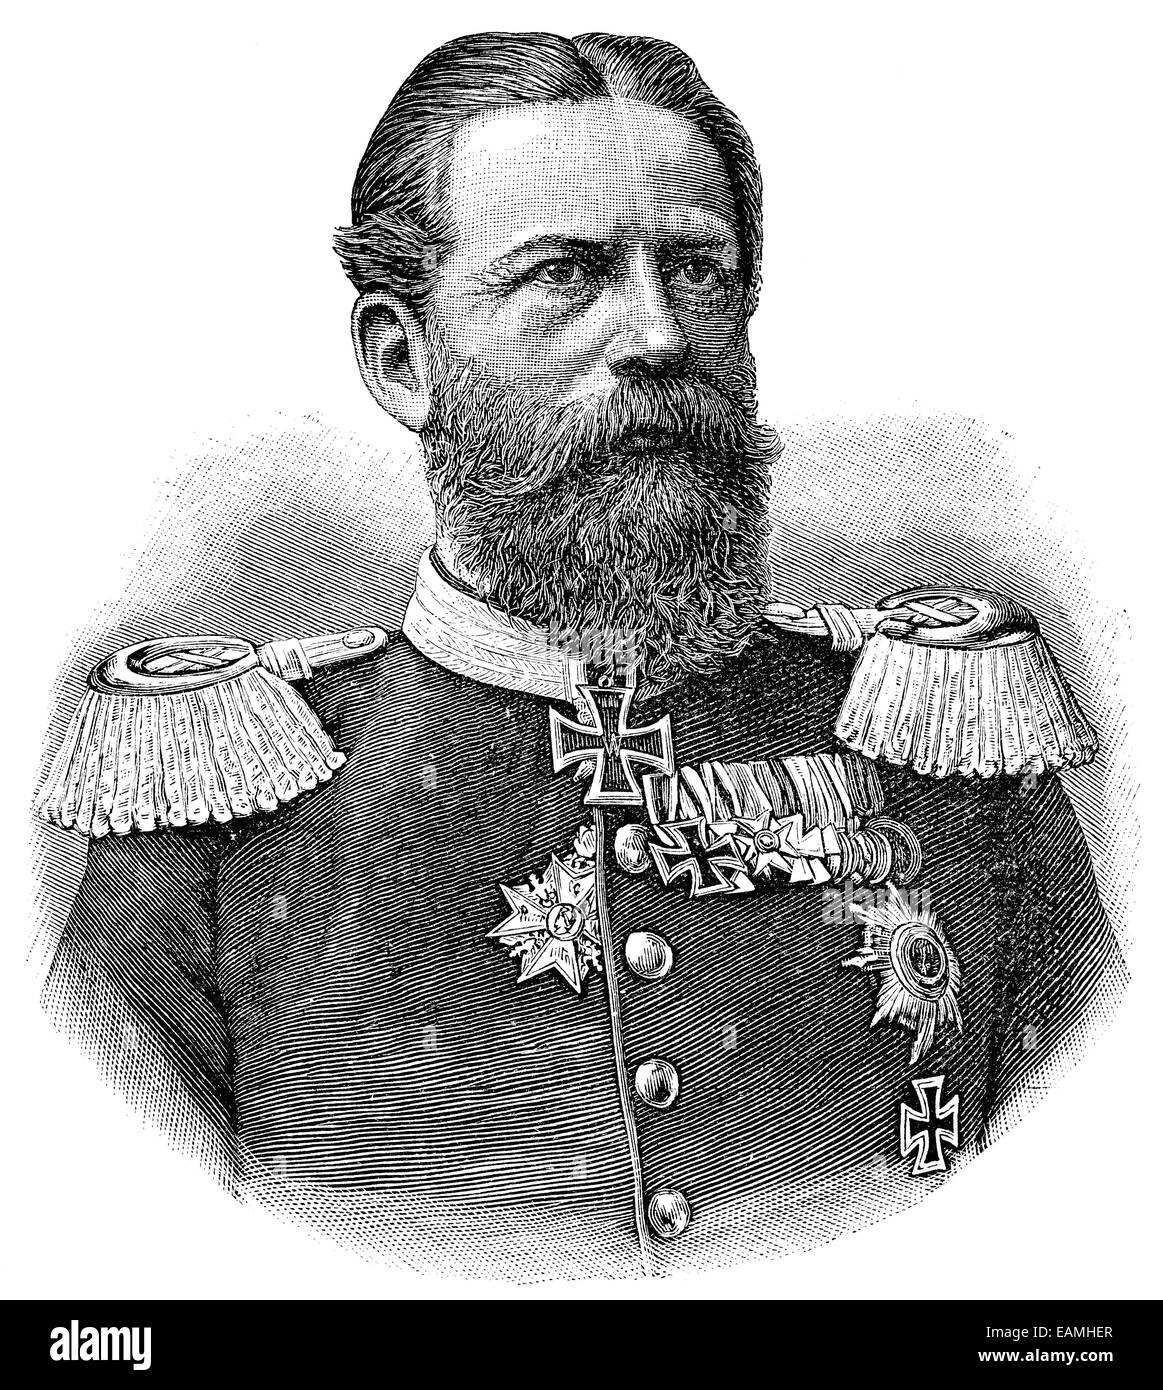 Portrait of Frederick III, German Emperor. Publication of the book 'A Century in the text and pictures', - Stock Image